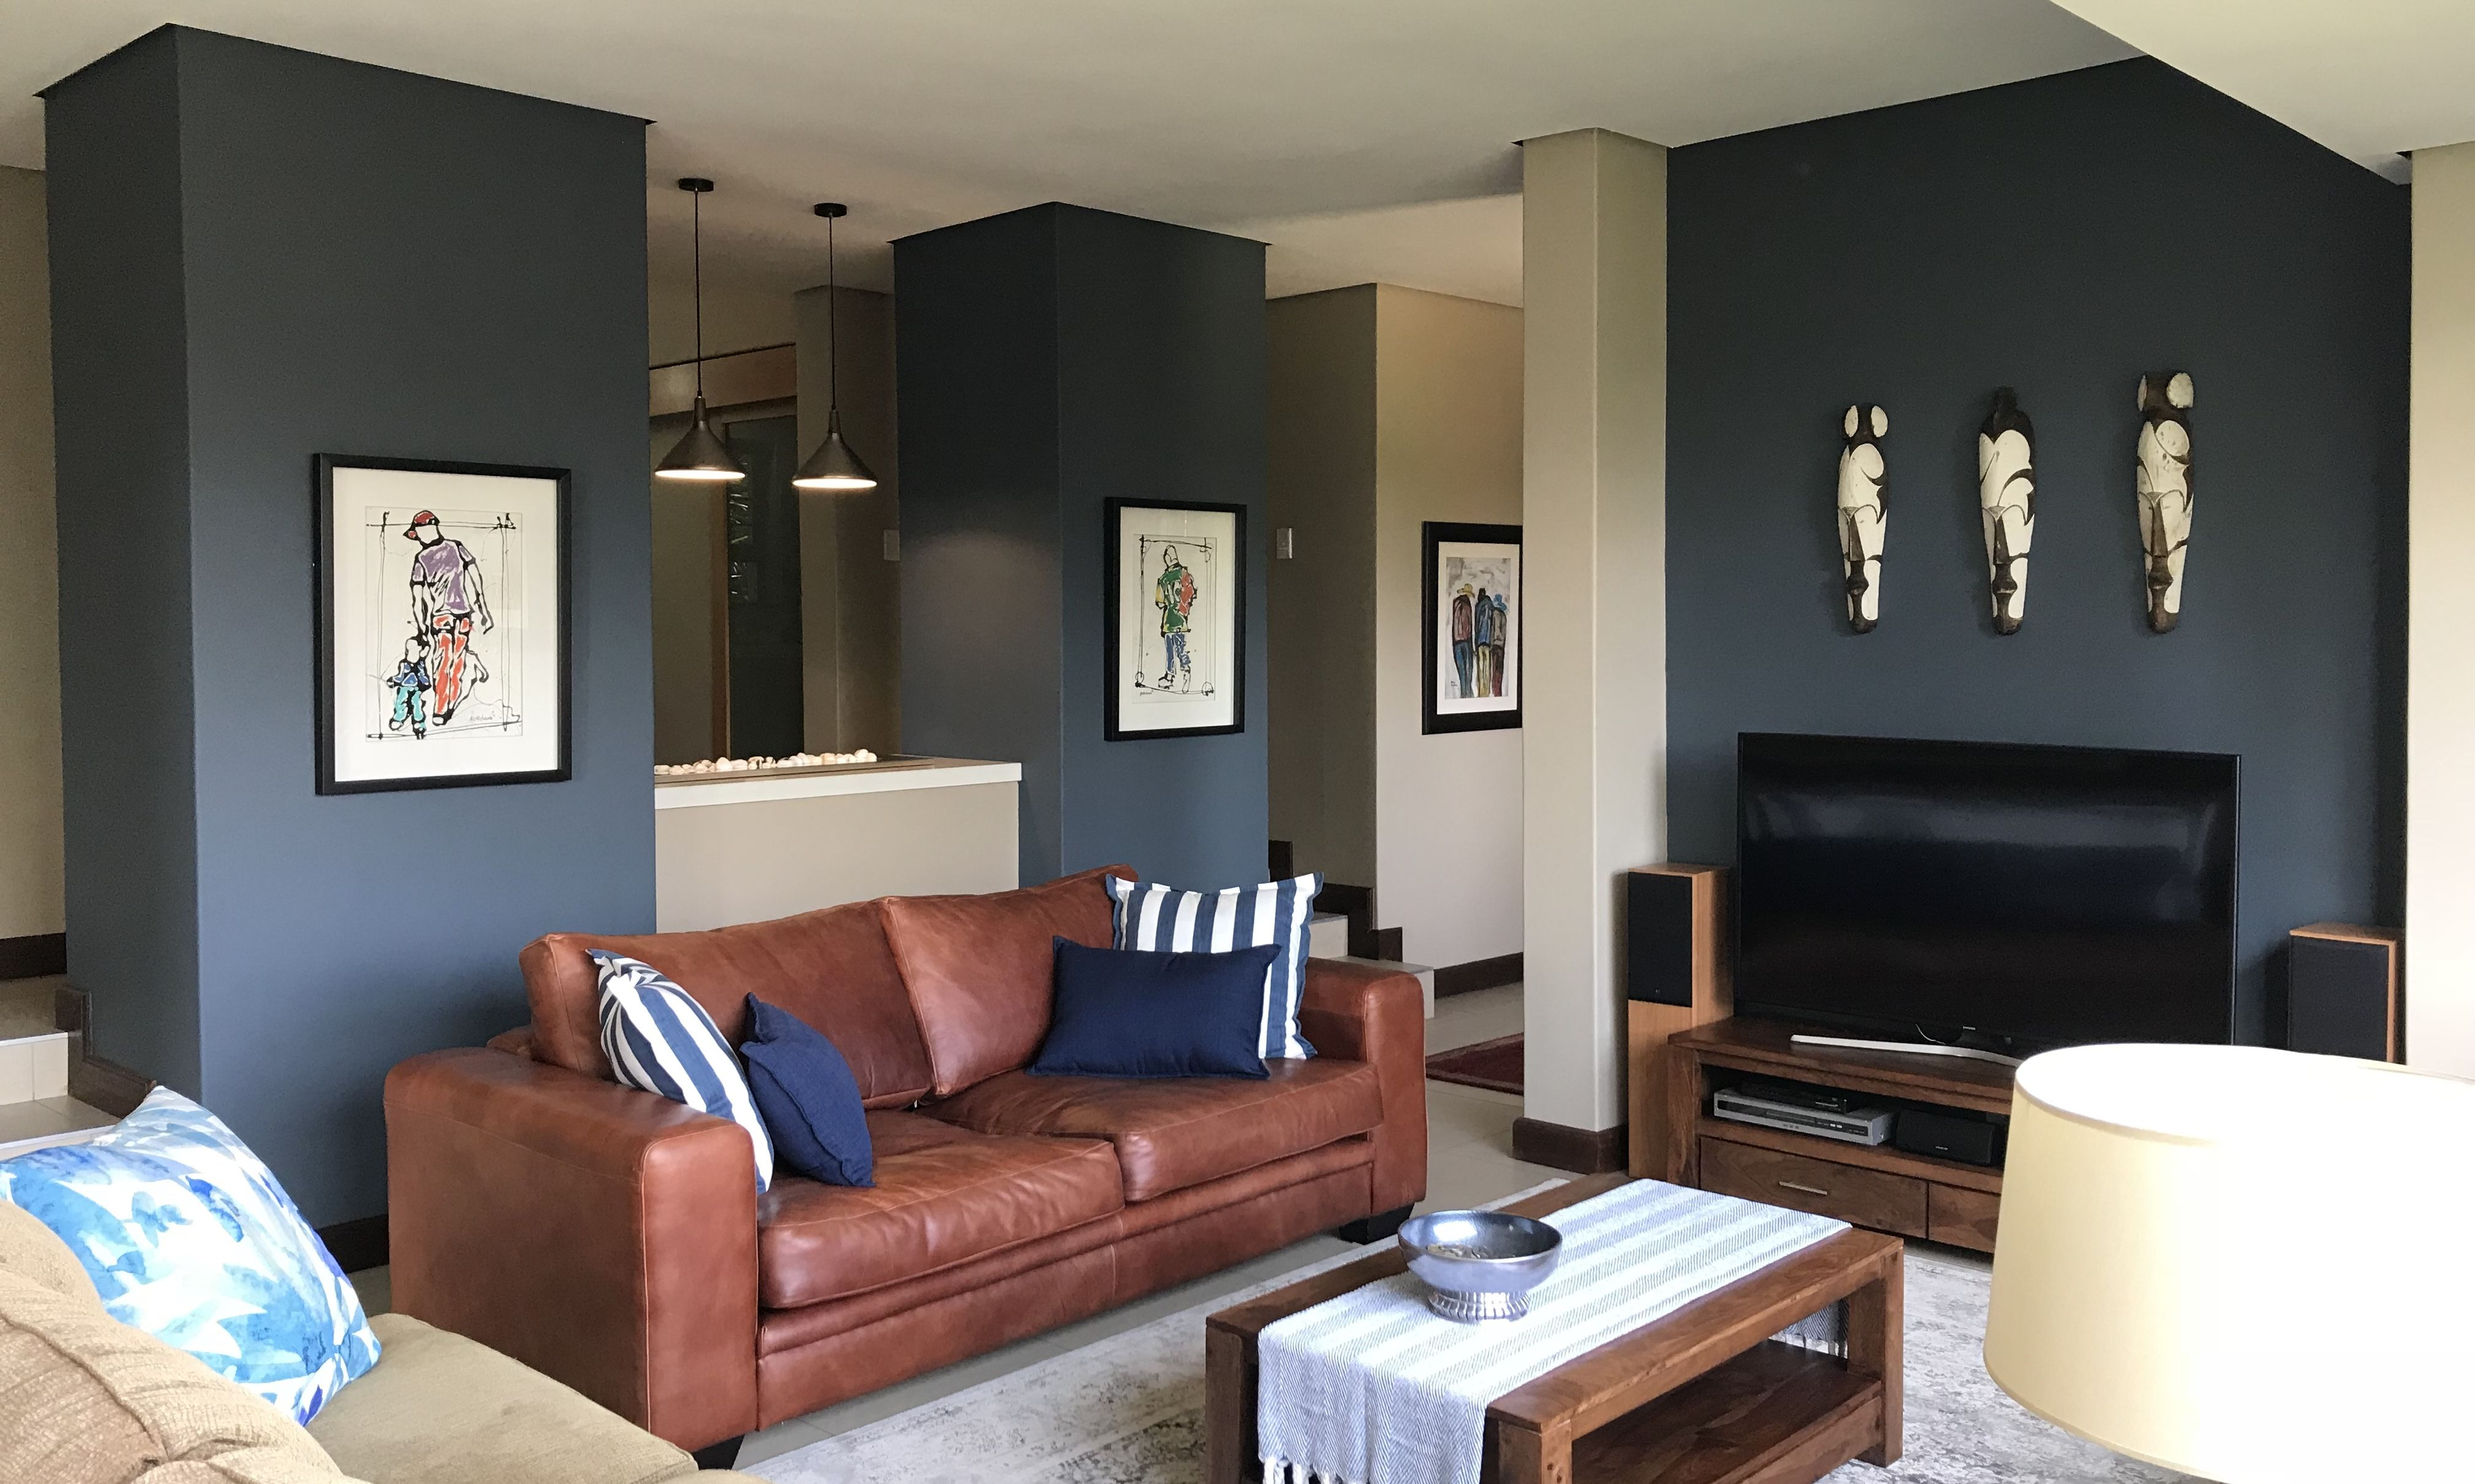 Living Room With Tan Leather Couch And Indigo Blue Walls Tan Leather Couch Tan Leather Sofas Leather Couch